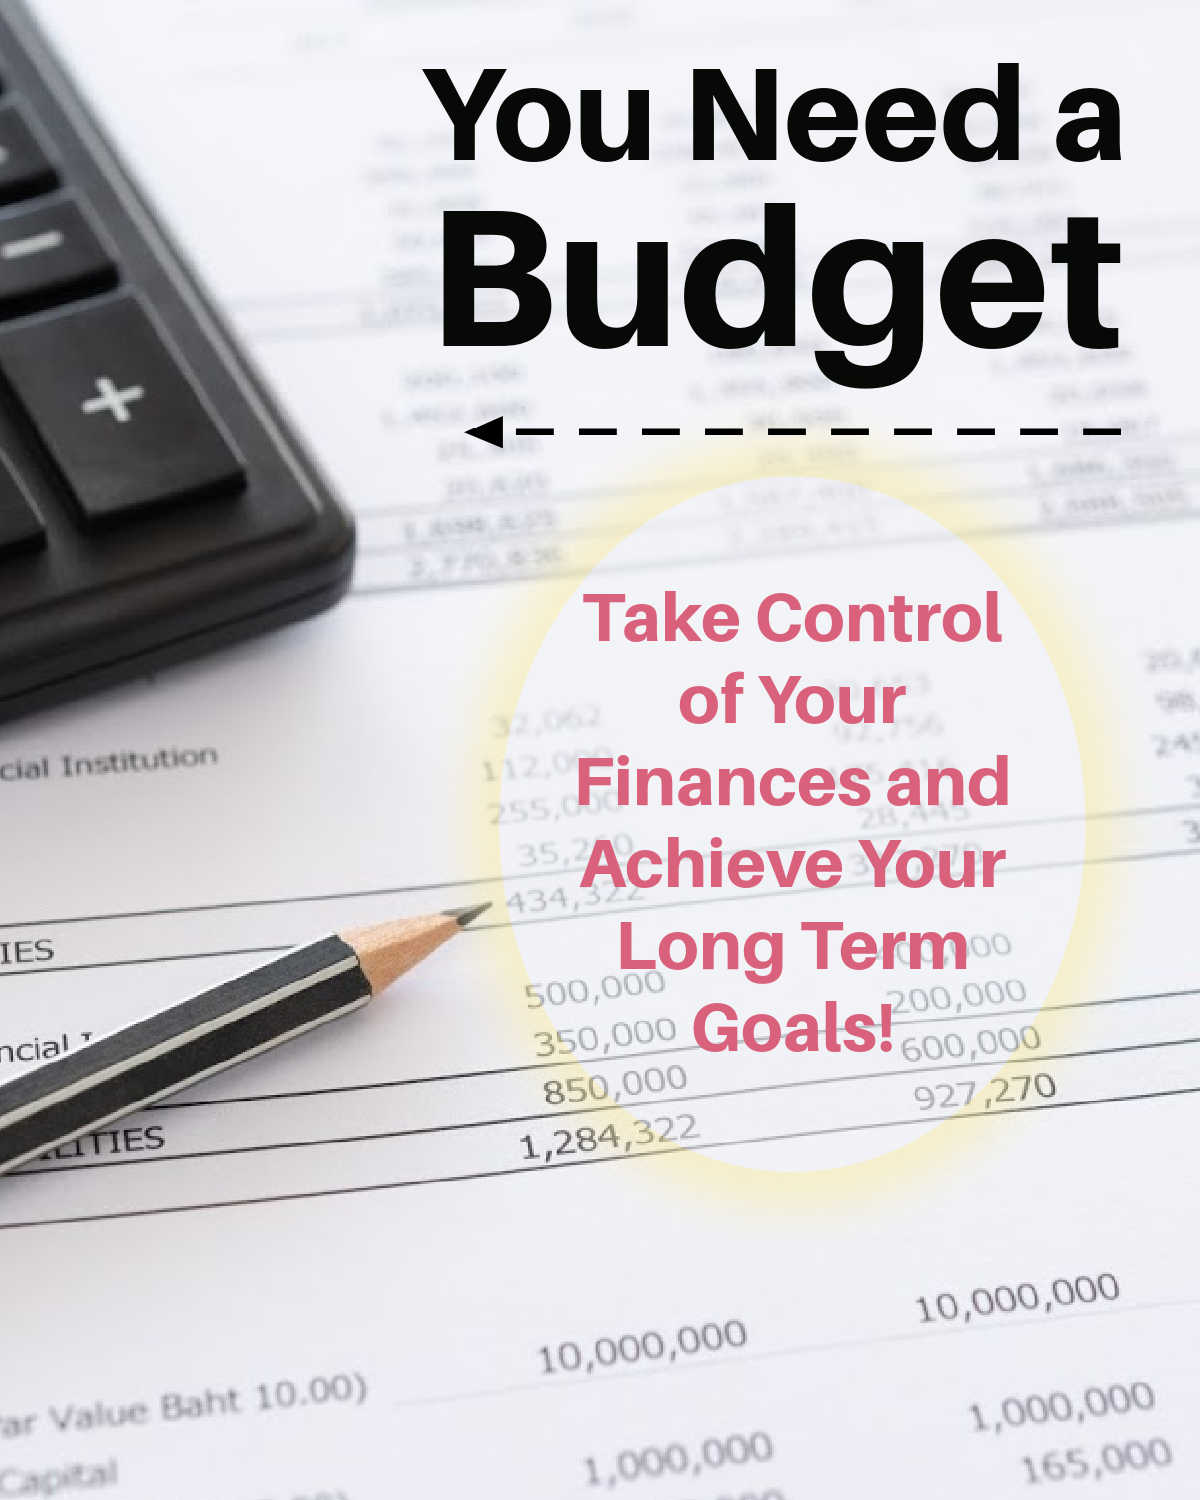 calculator and spreadsheet showing an old fashioned way to manage a budget.